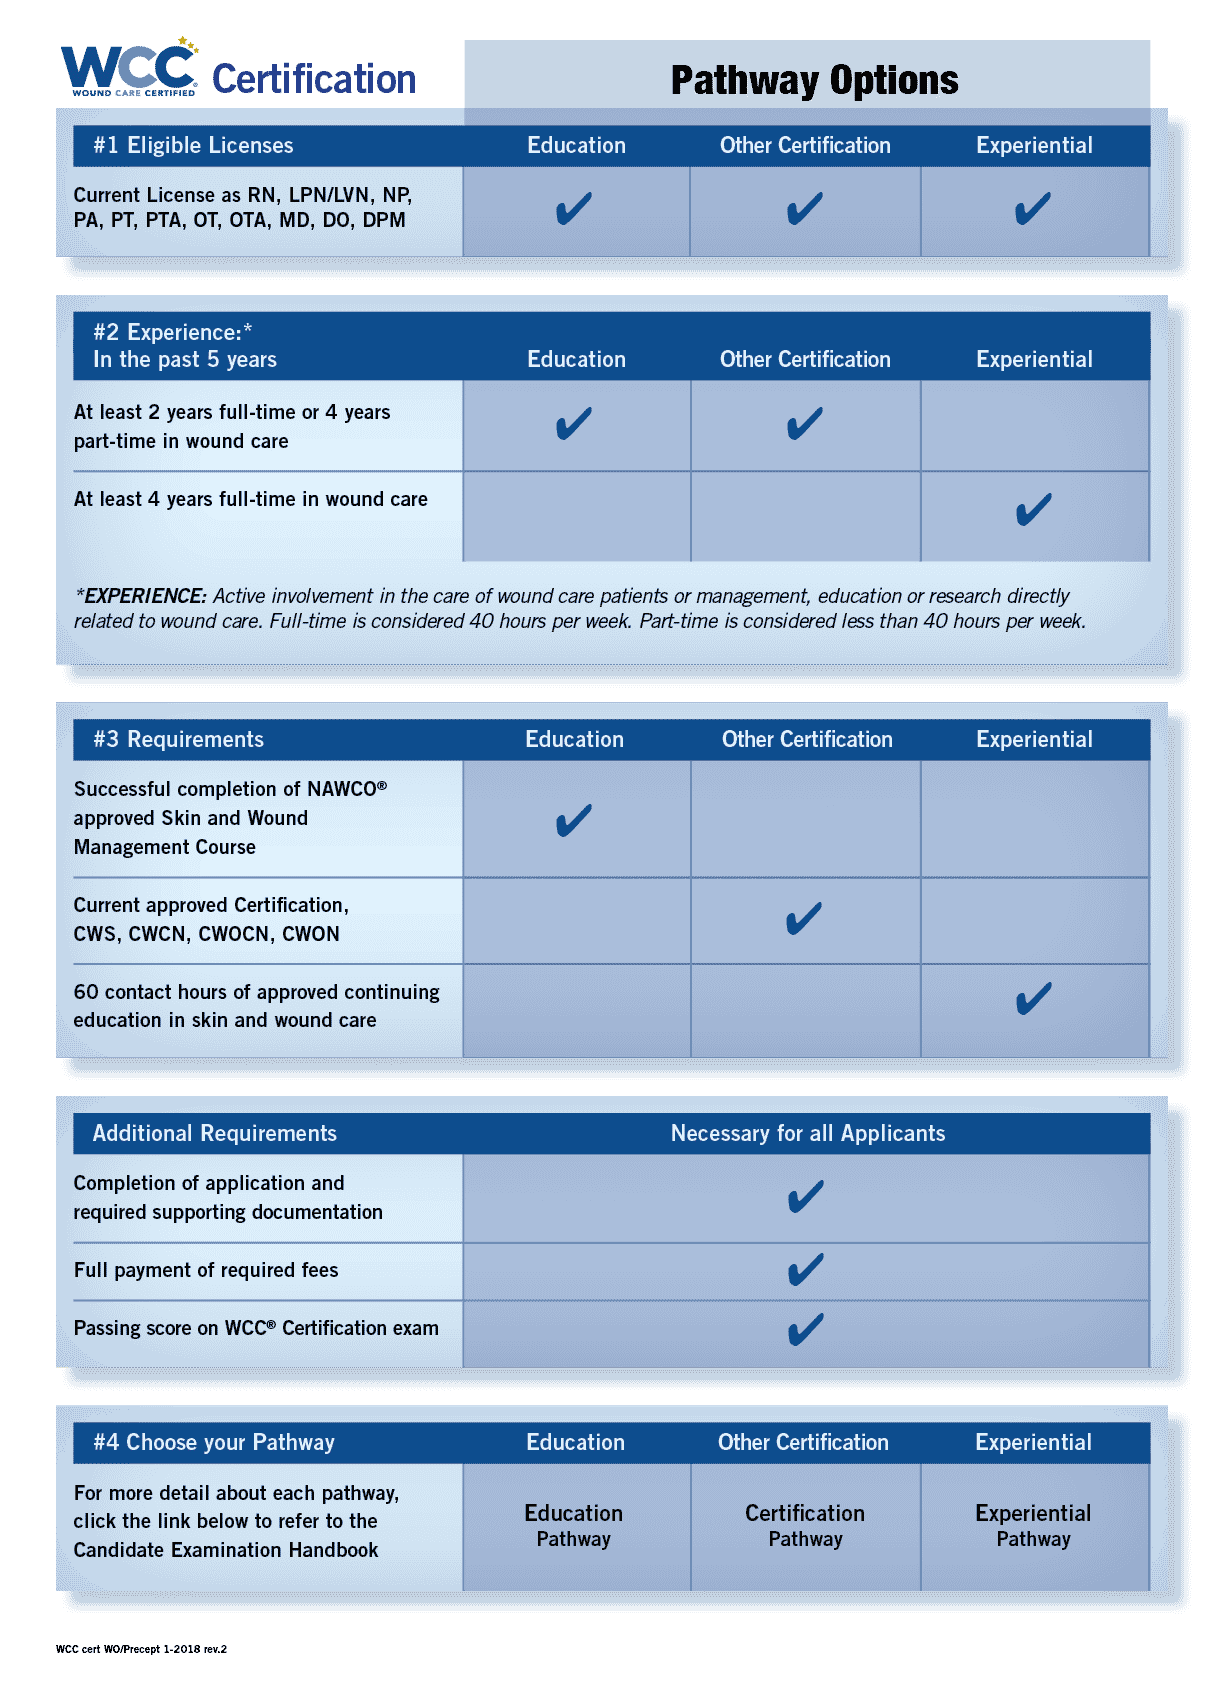 Wound care certification nawco wound care and ostomy the chart below shows the different pathway options required to sit for the wound care certified wcc certification exam review the information to see xflitez Choice Image